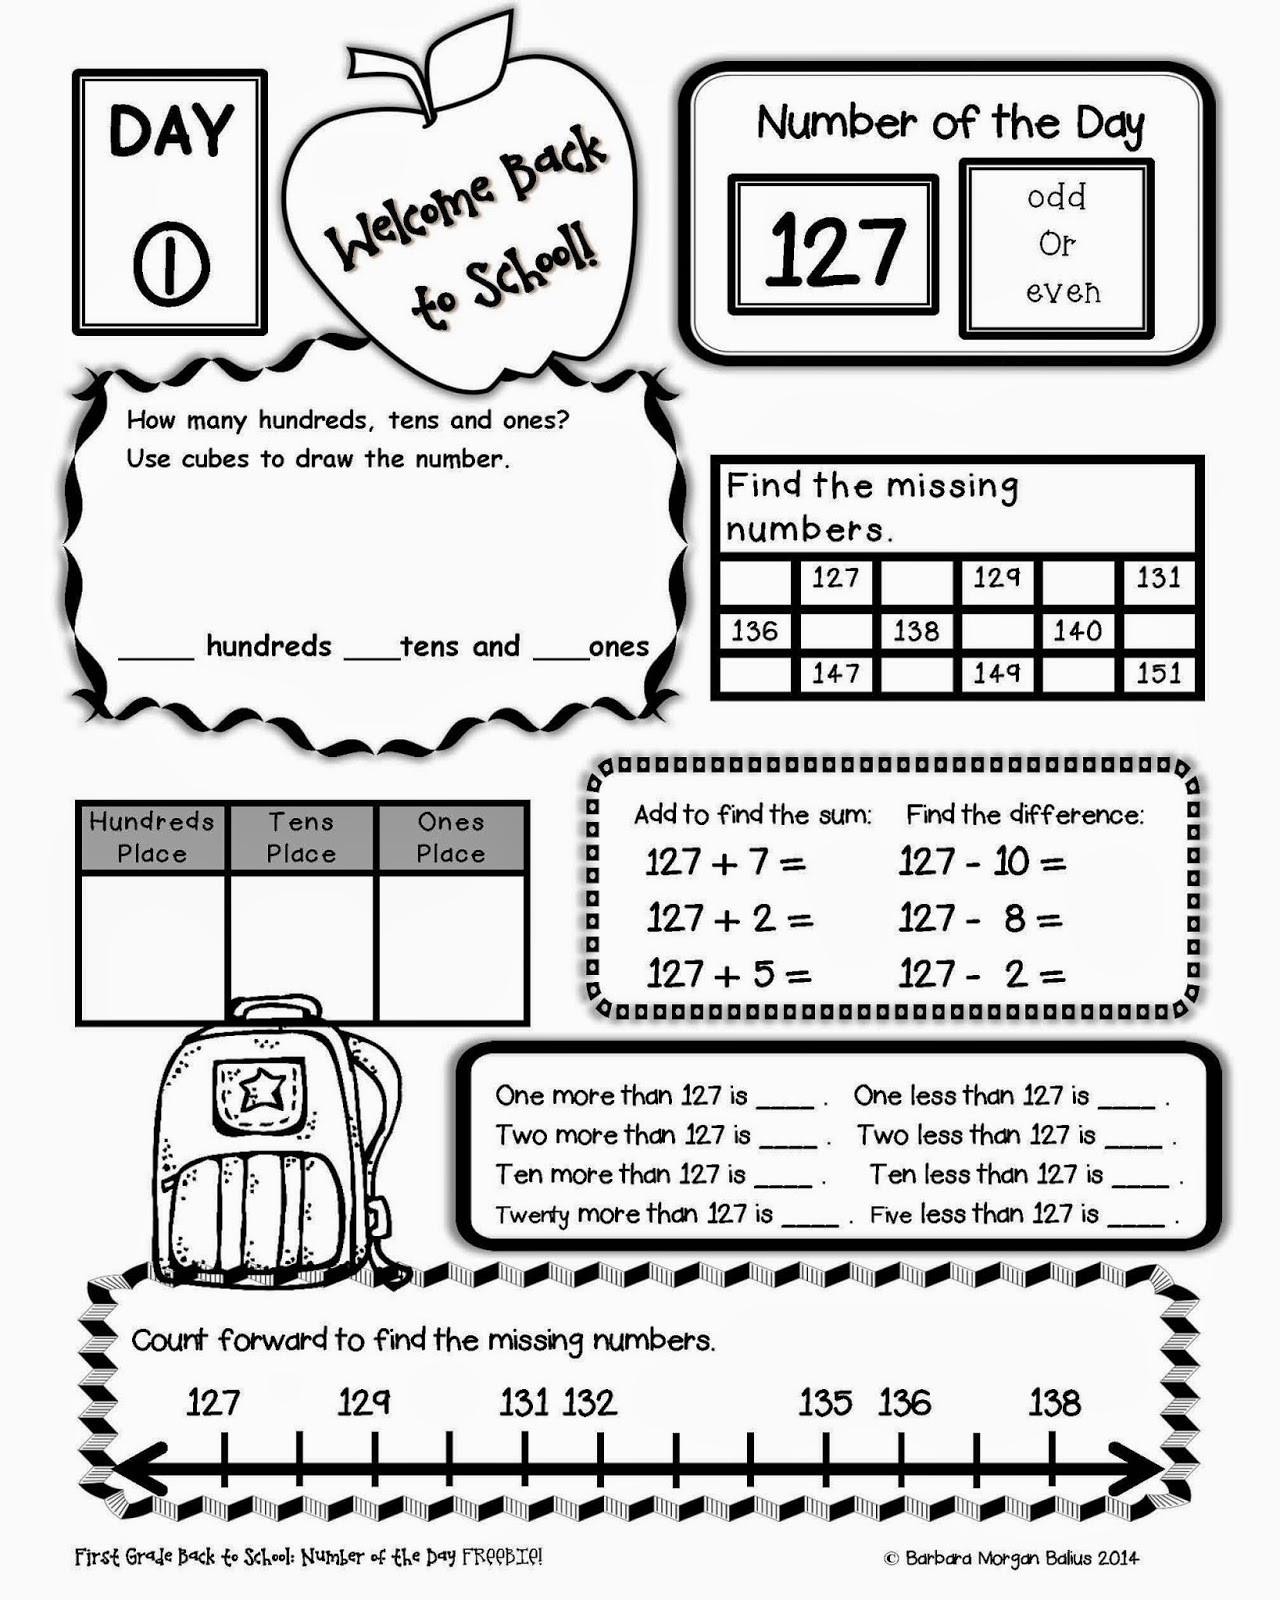 Missing Number Worksheets 2nd Grade Back to School Worksheets 2nd Grade for Printable Back to